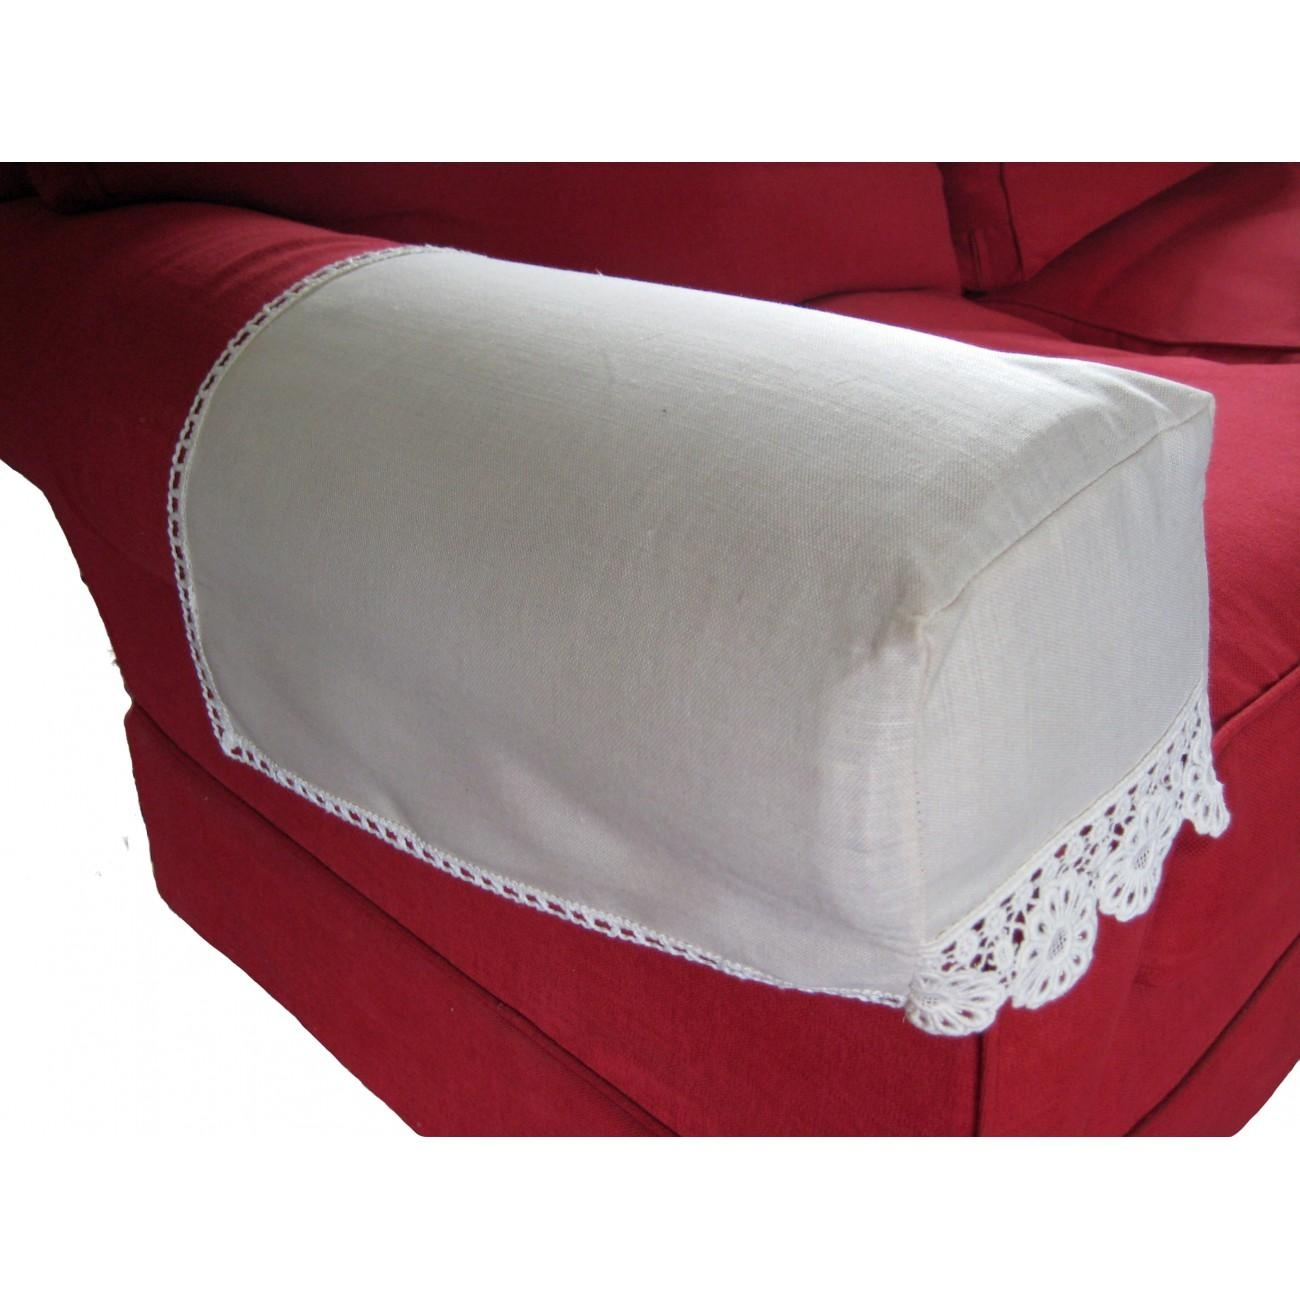 Delighful Armchair Arm Covers Lace Pattern For Chair Backs And Within Armchair Armrest Covers (View 12 of 20)